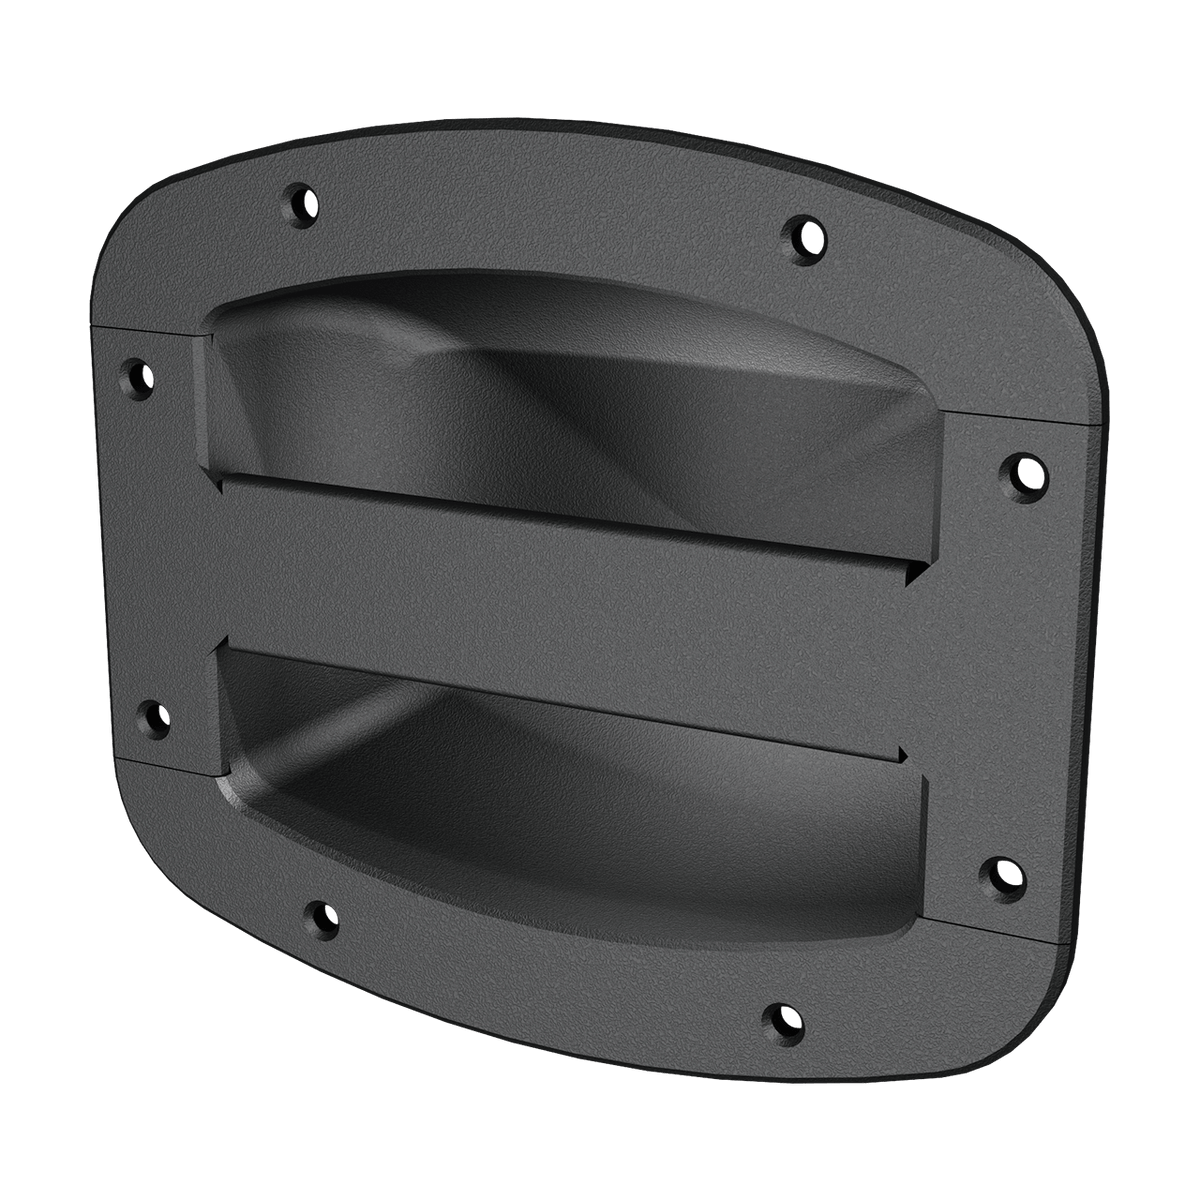 Render of Oval Speaker Cabinet Handle